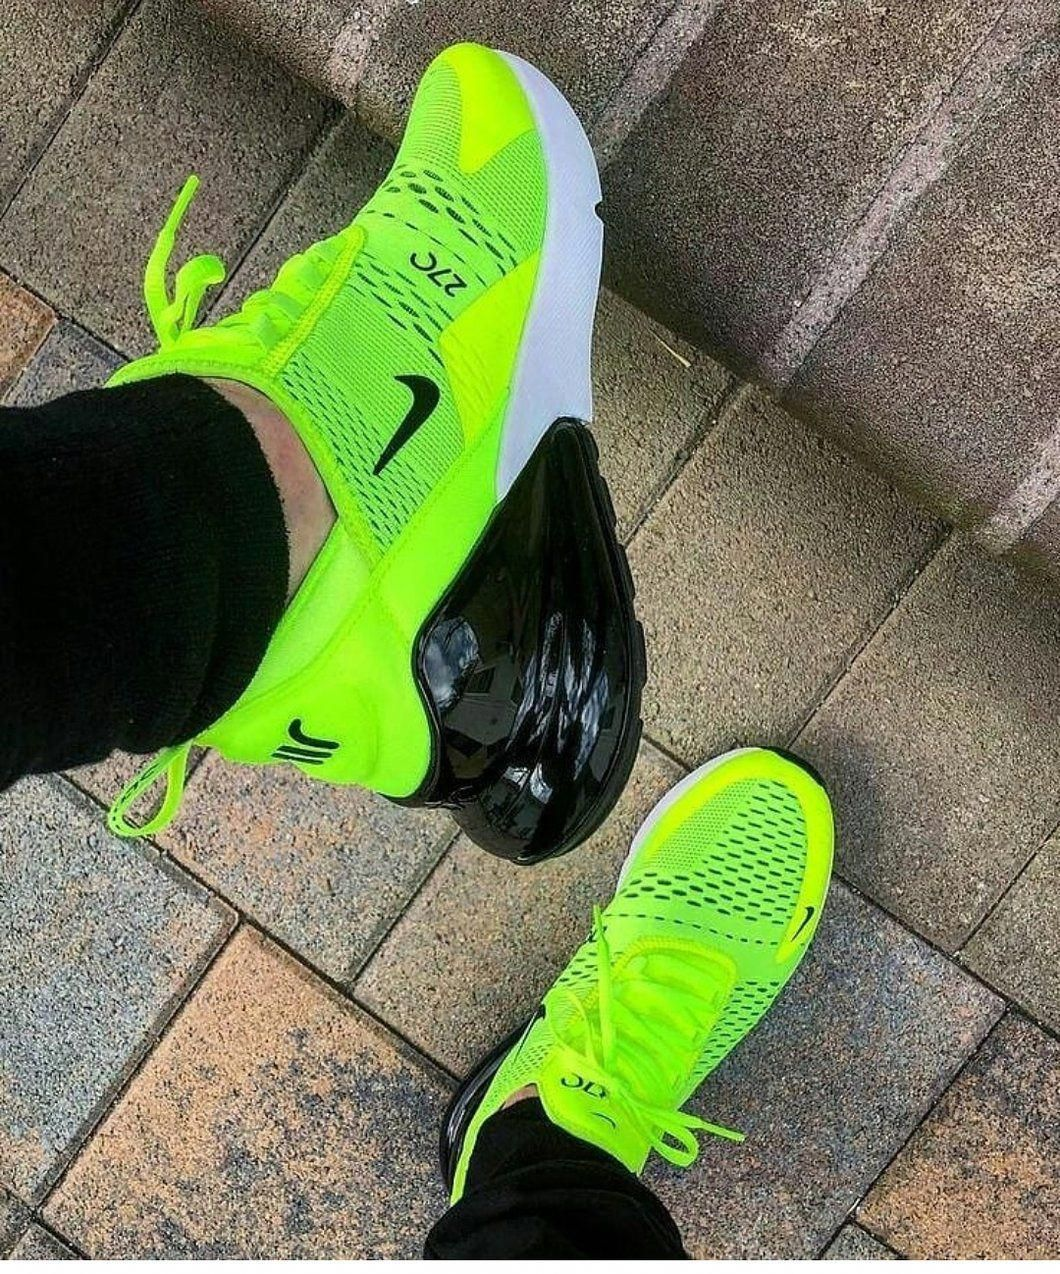 Air 270 Neon #shoessneakers | Sneakers, Sneakers fashion